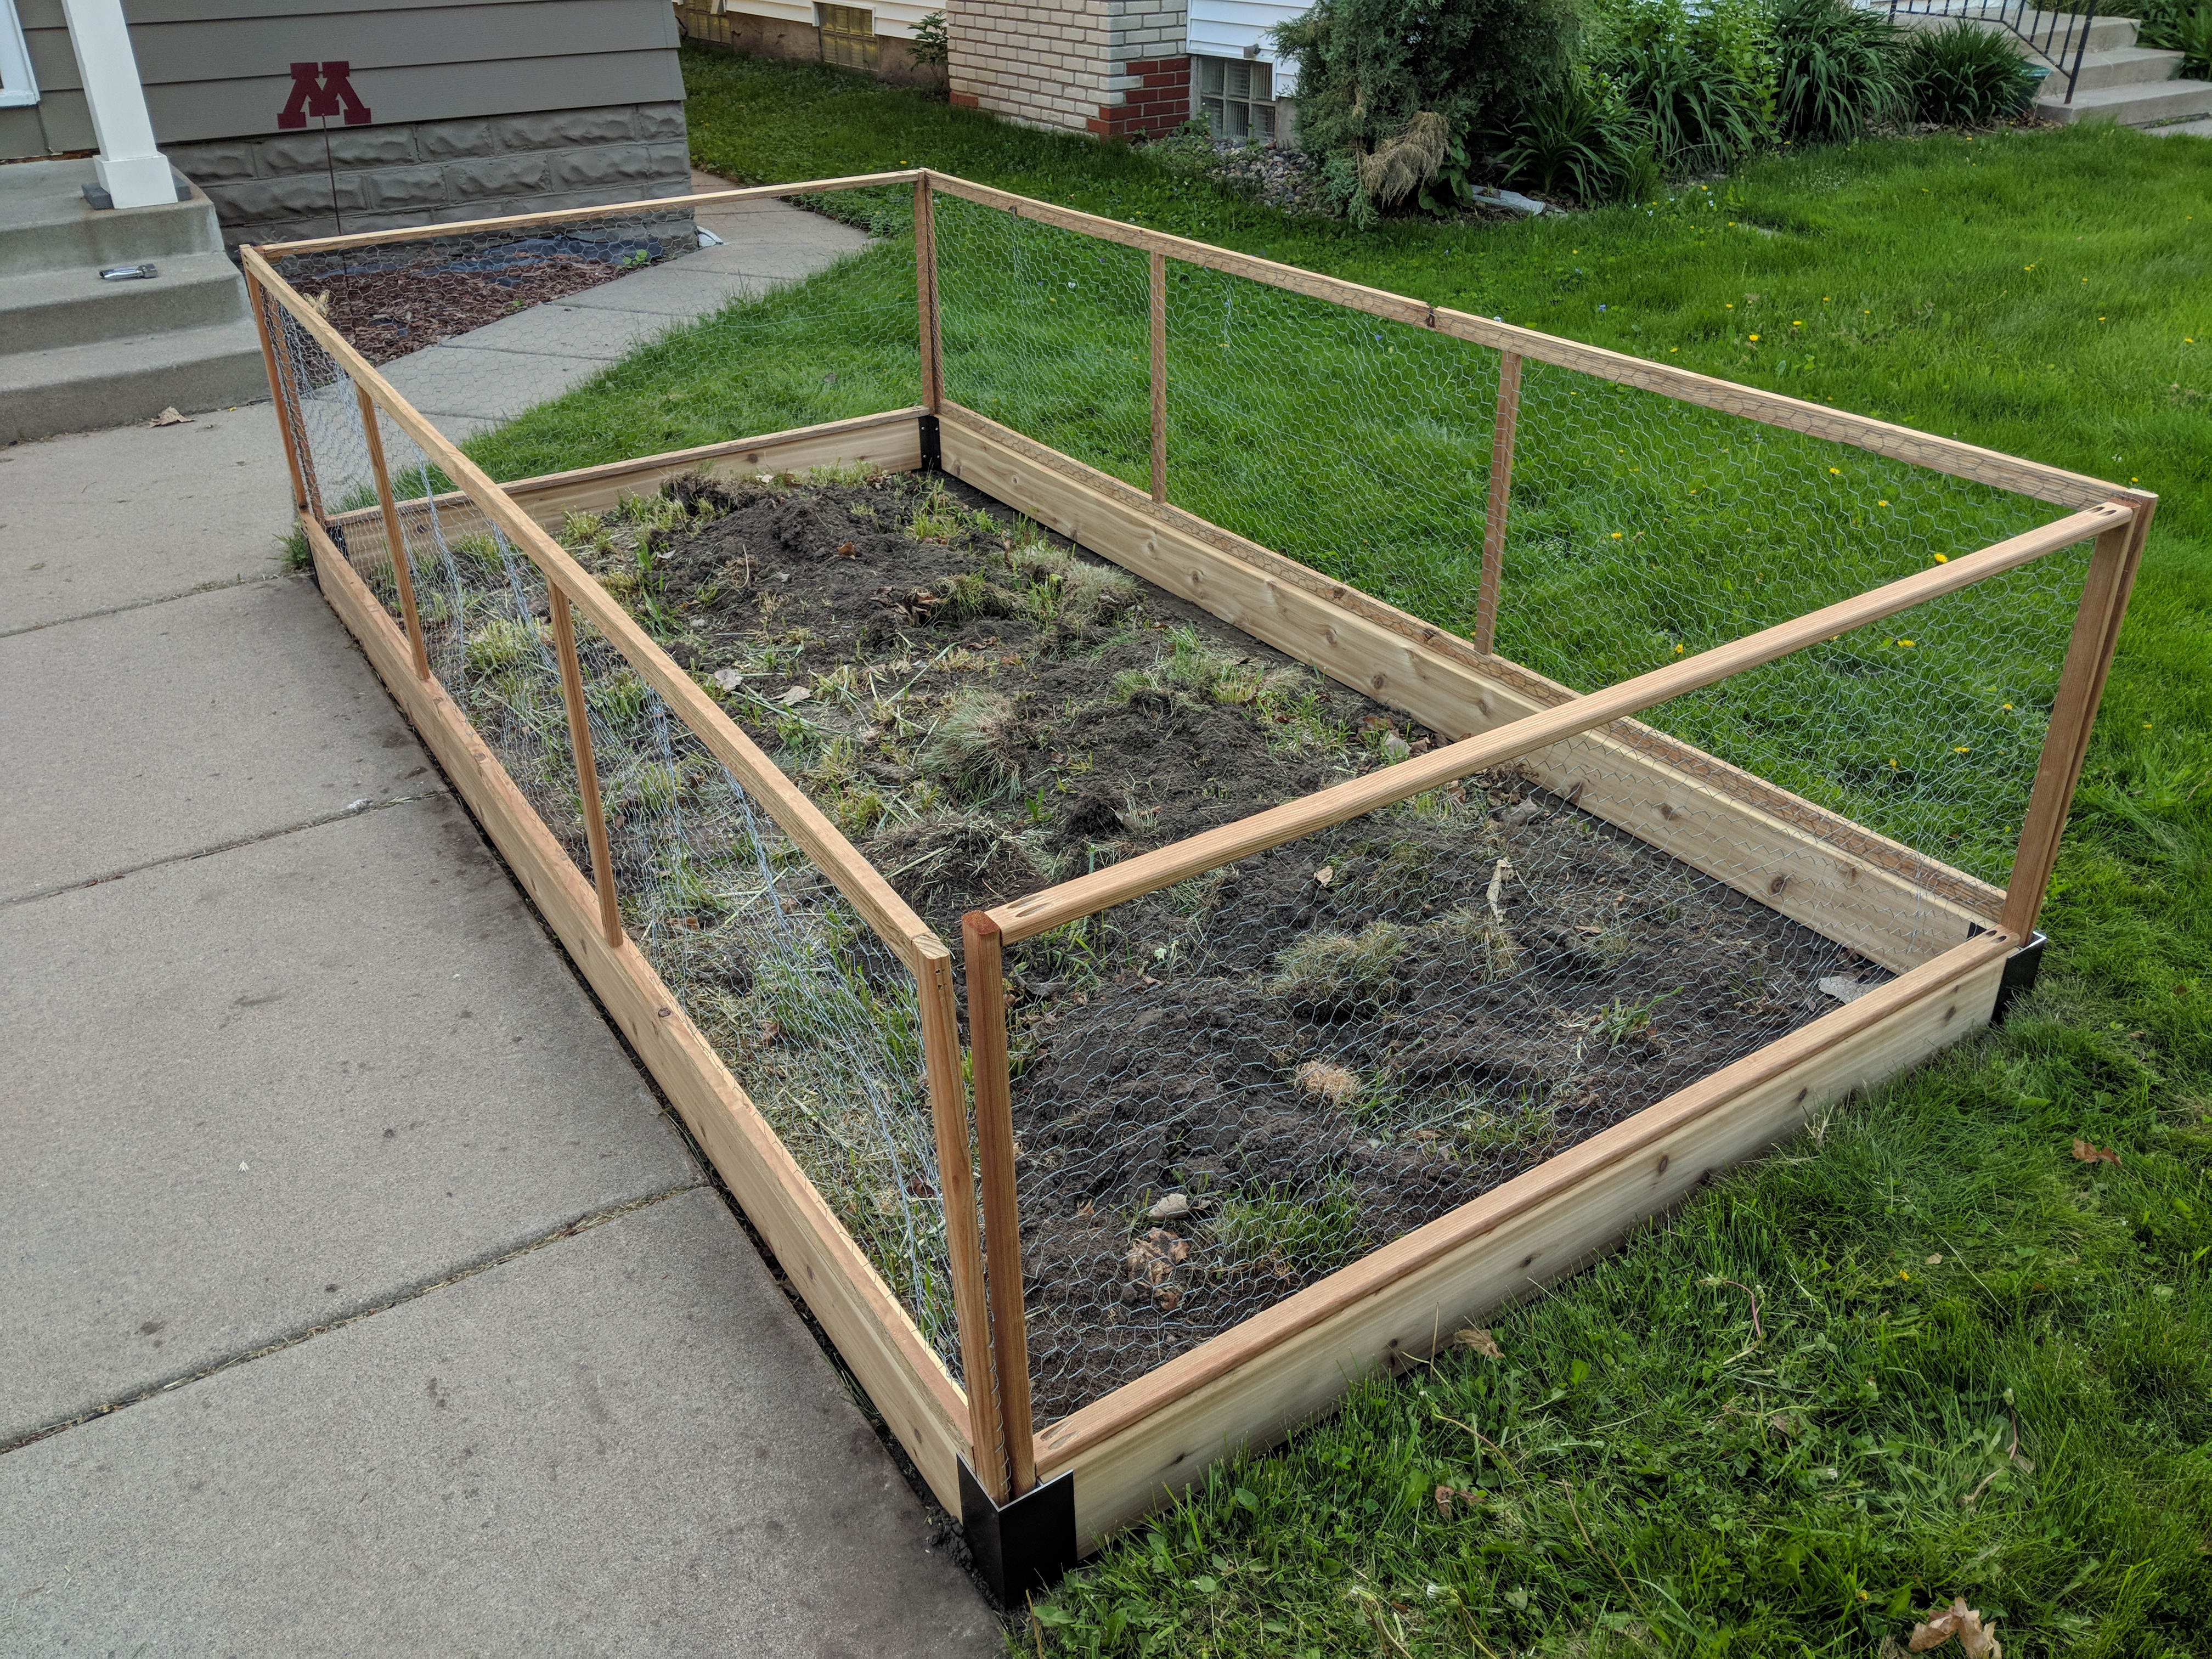 Chicken-wire fence panels for garden bed | Marginalia